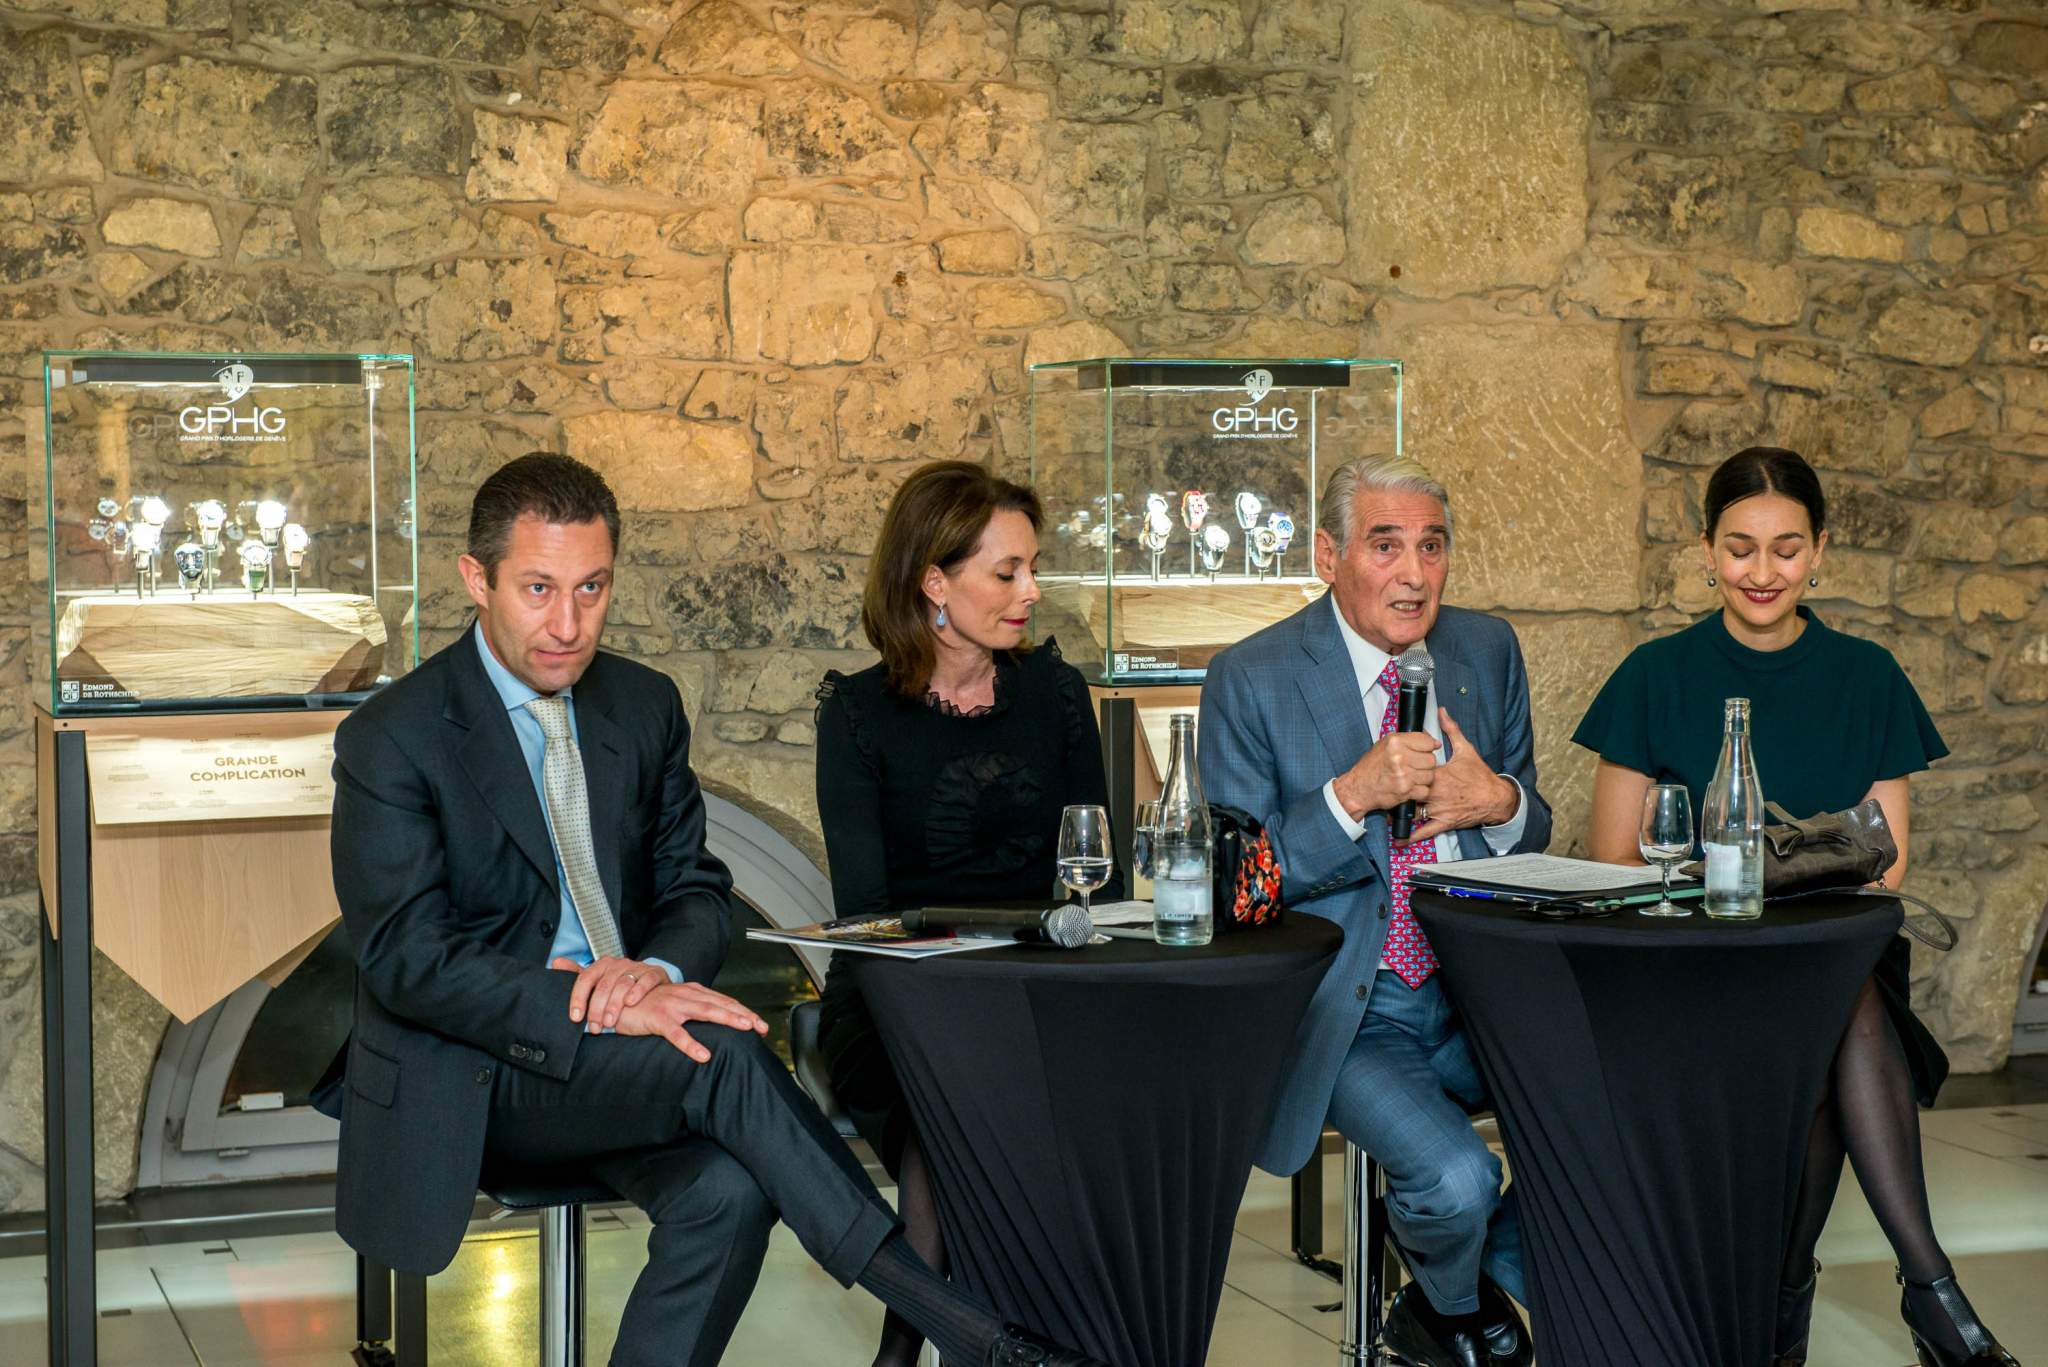 Aurel Bacs (President of the jury of the GPHG), Valérie Boscat (Communication Director of Edmond de Rothschild Group), Carlo Lamprecht (President of the Foundation of the GPHG) and Carine Maillard (Director of the Foundation of the GPHG) at the exhibition of the GPHG 2013 in Geneva